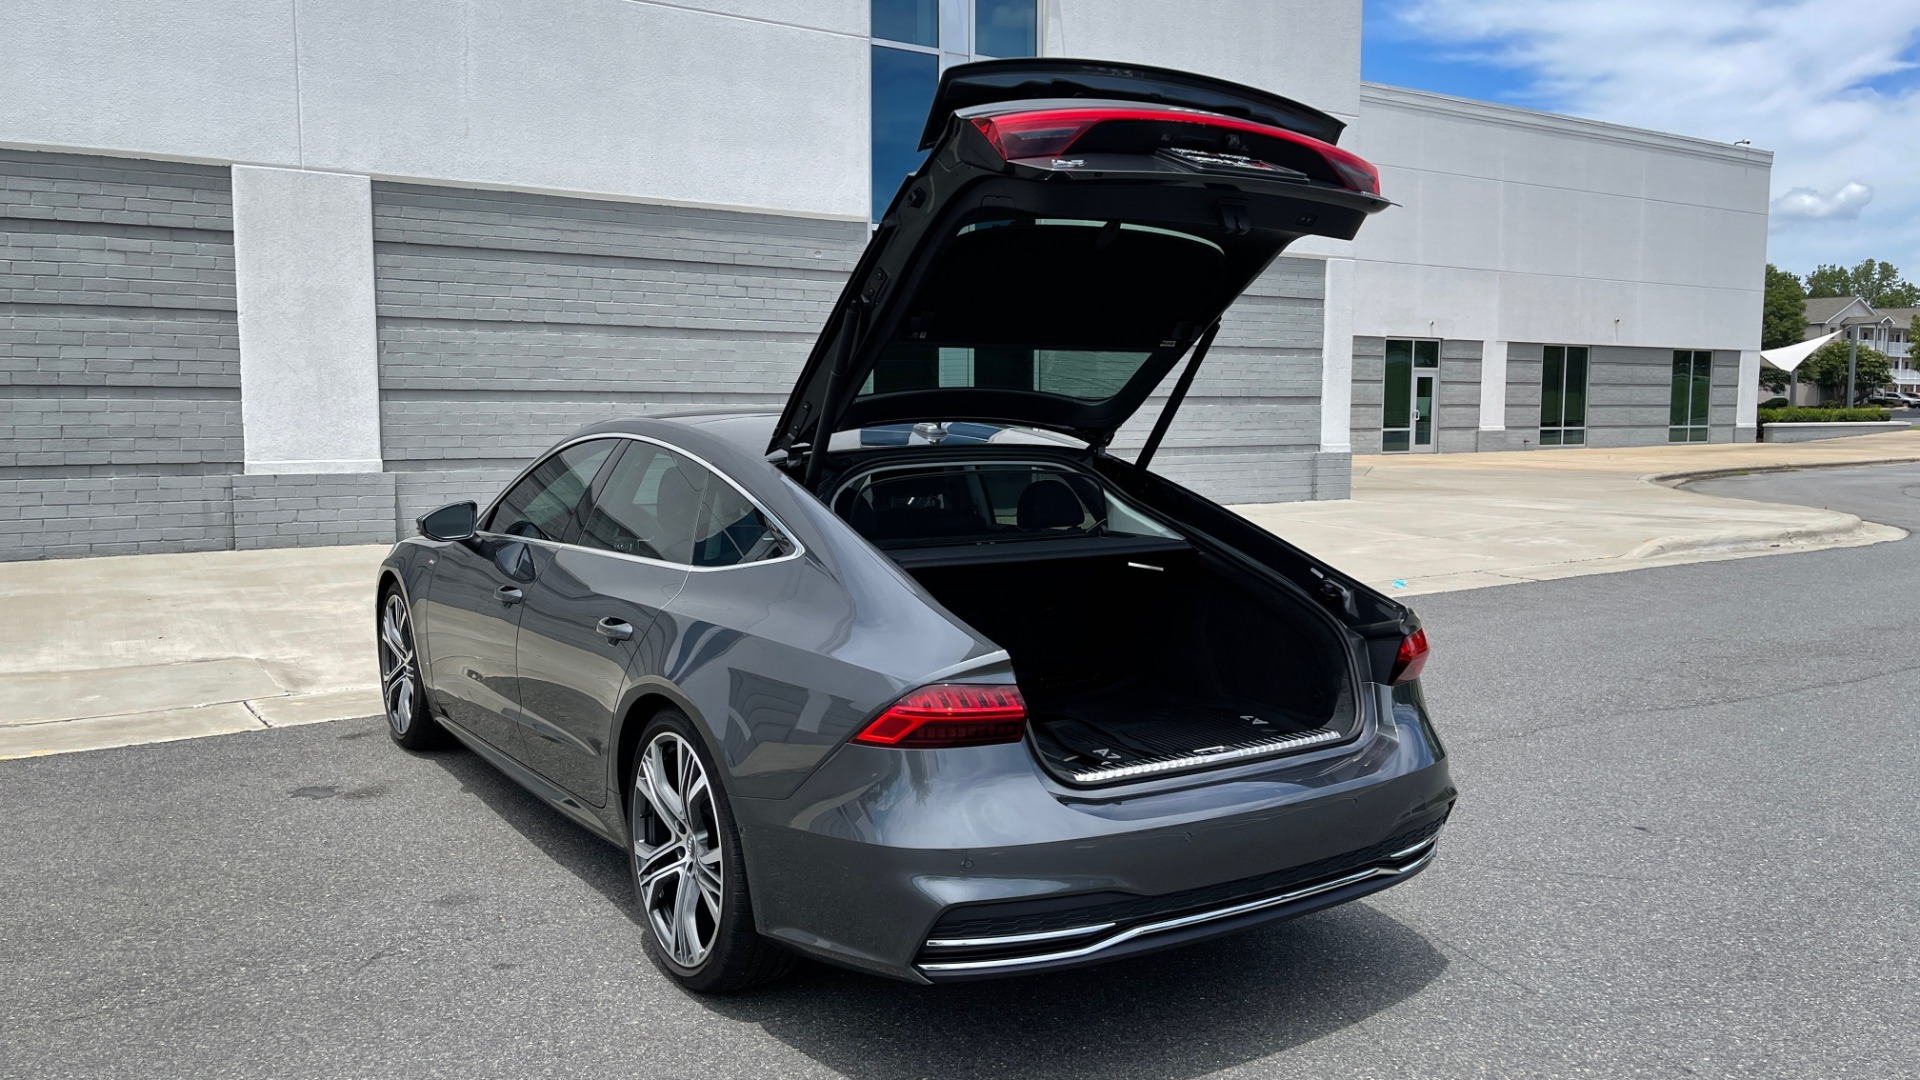 Used 2019 Audi A7 PRESTIGE 55 TFSI 3.0T / NAV / B&O SND / SUNROOF / S-LINE / 21IN WHLS / REAR for sale $66,995 at Formula Imports in Charlotte NC 28227 18